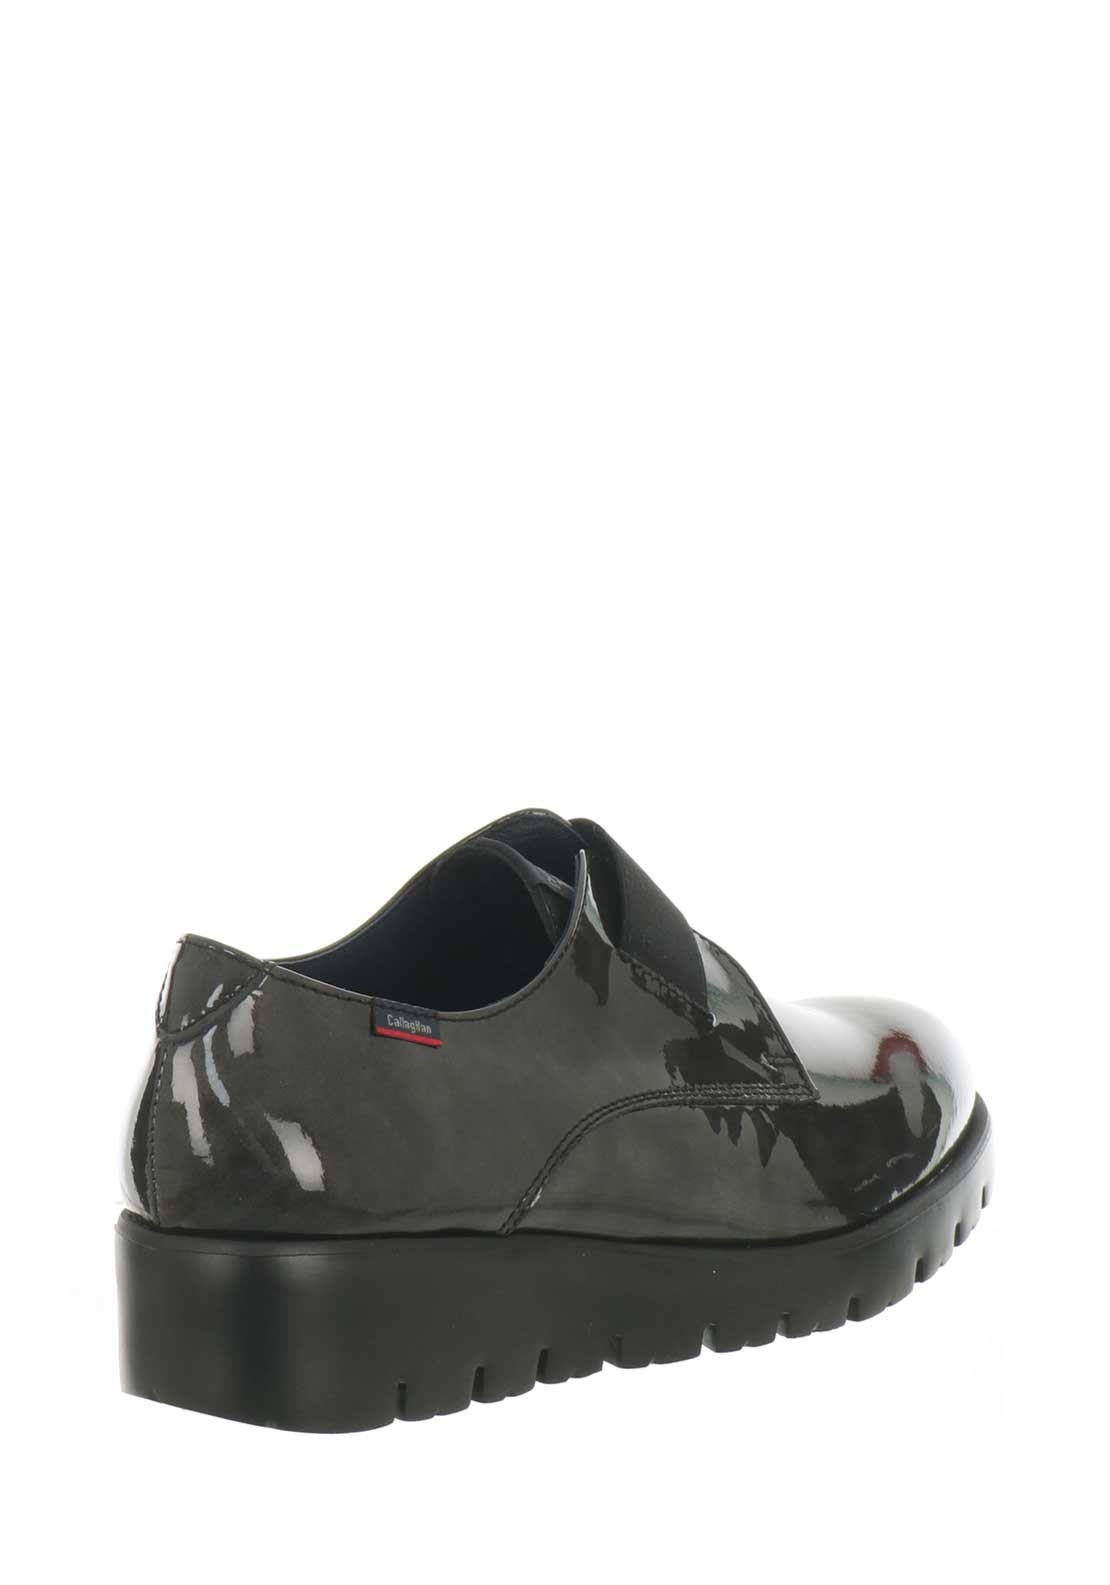 Callaghan Womens Leather Patent Shoes, Pewter | McElhinneys